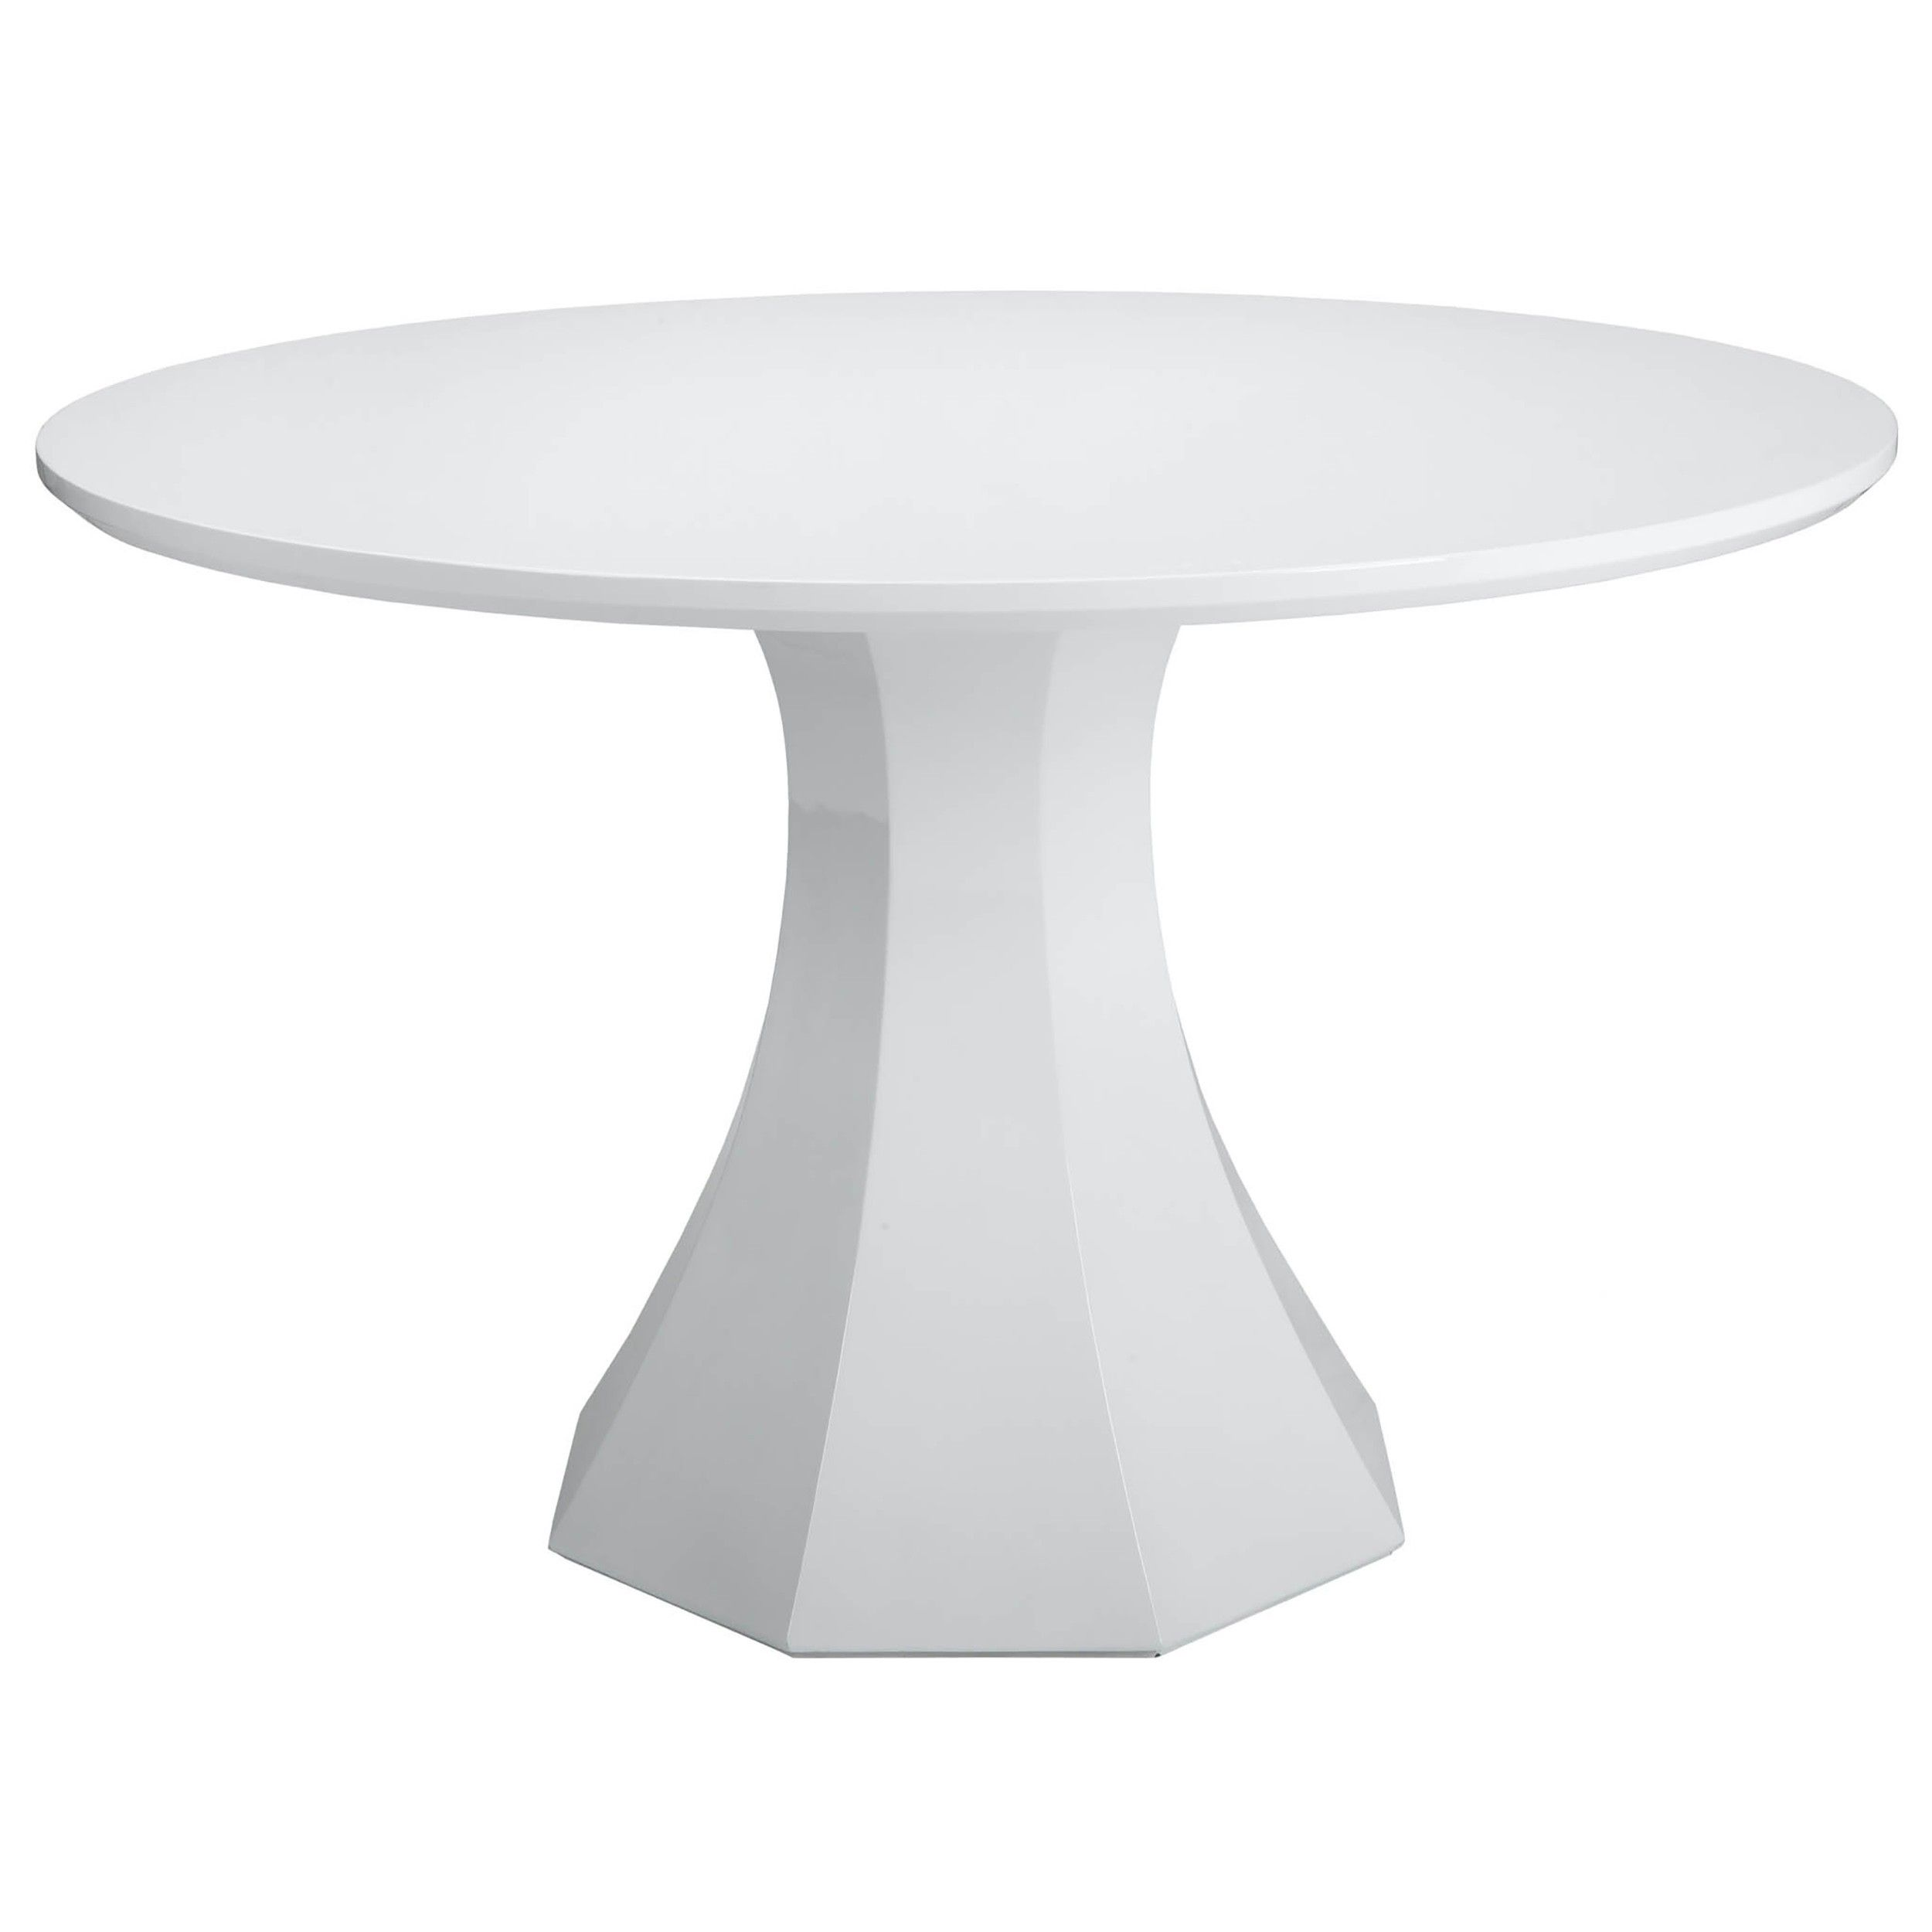 "Sanara Dining Table 48"", High Gloss White - Dining Tables - Dining - Furniture"